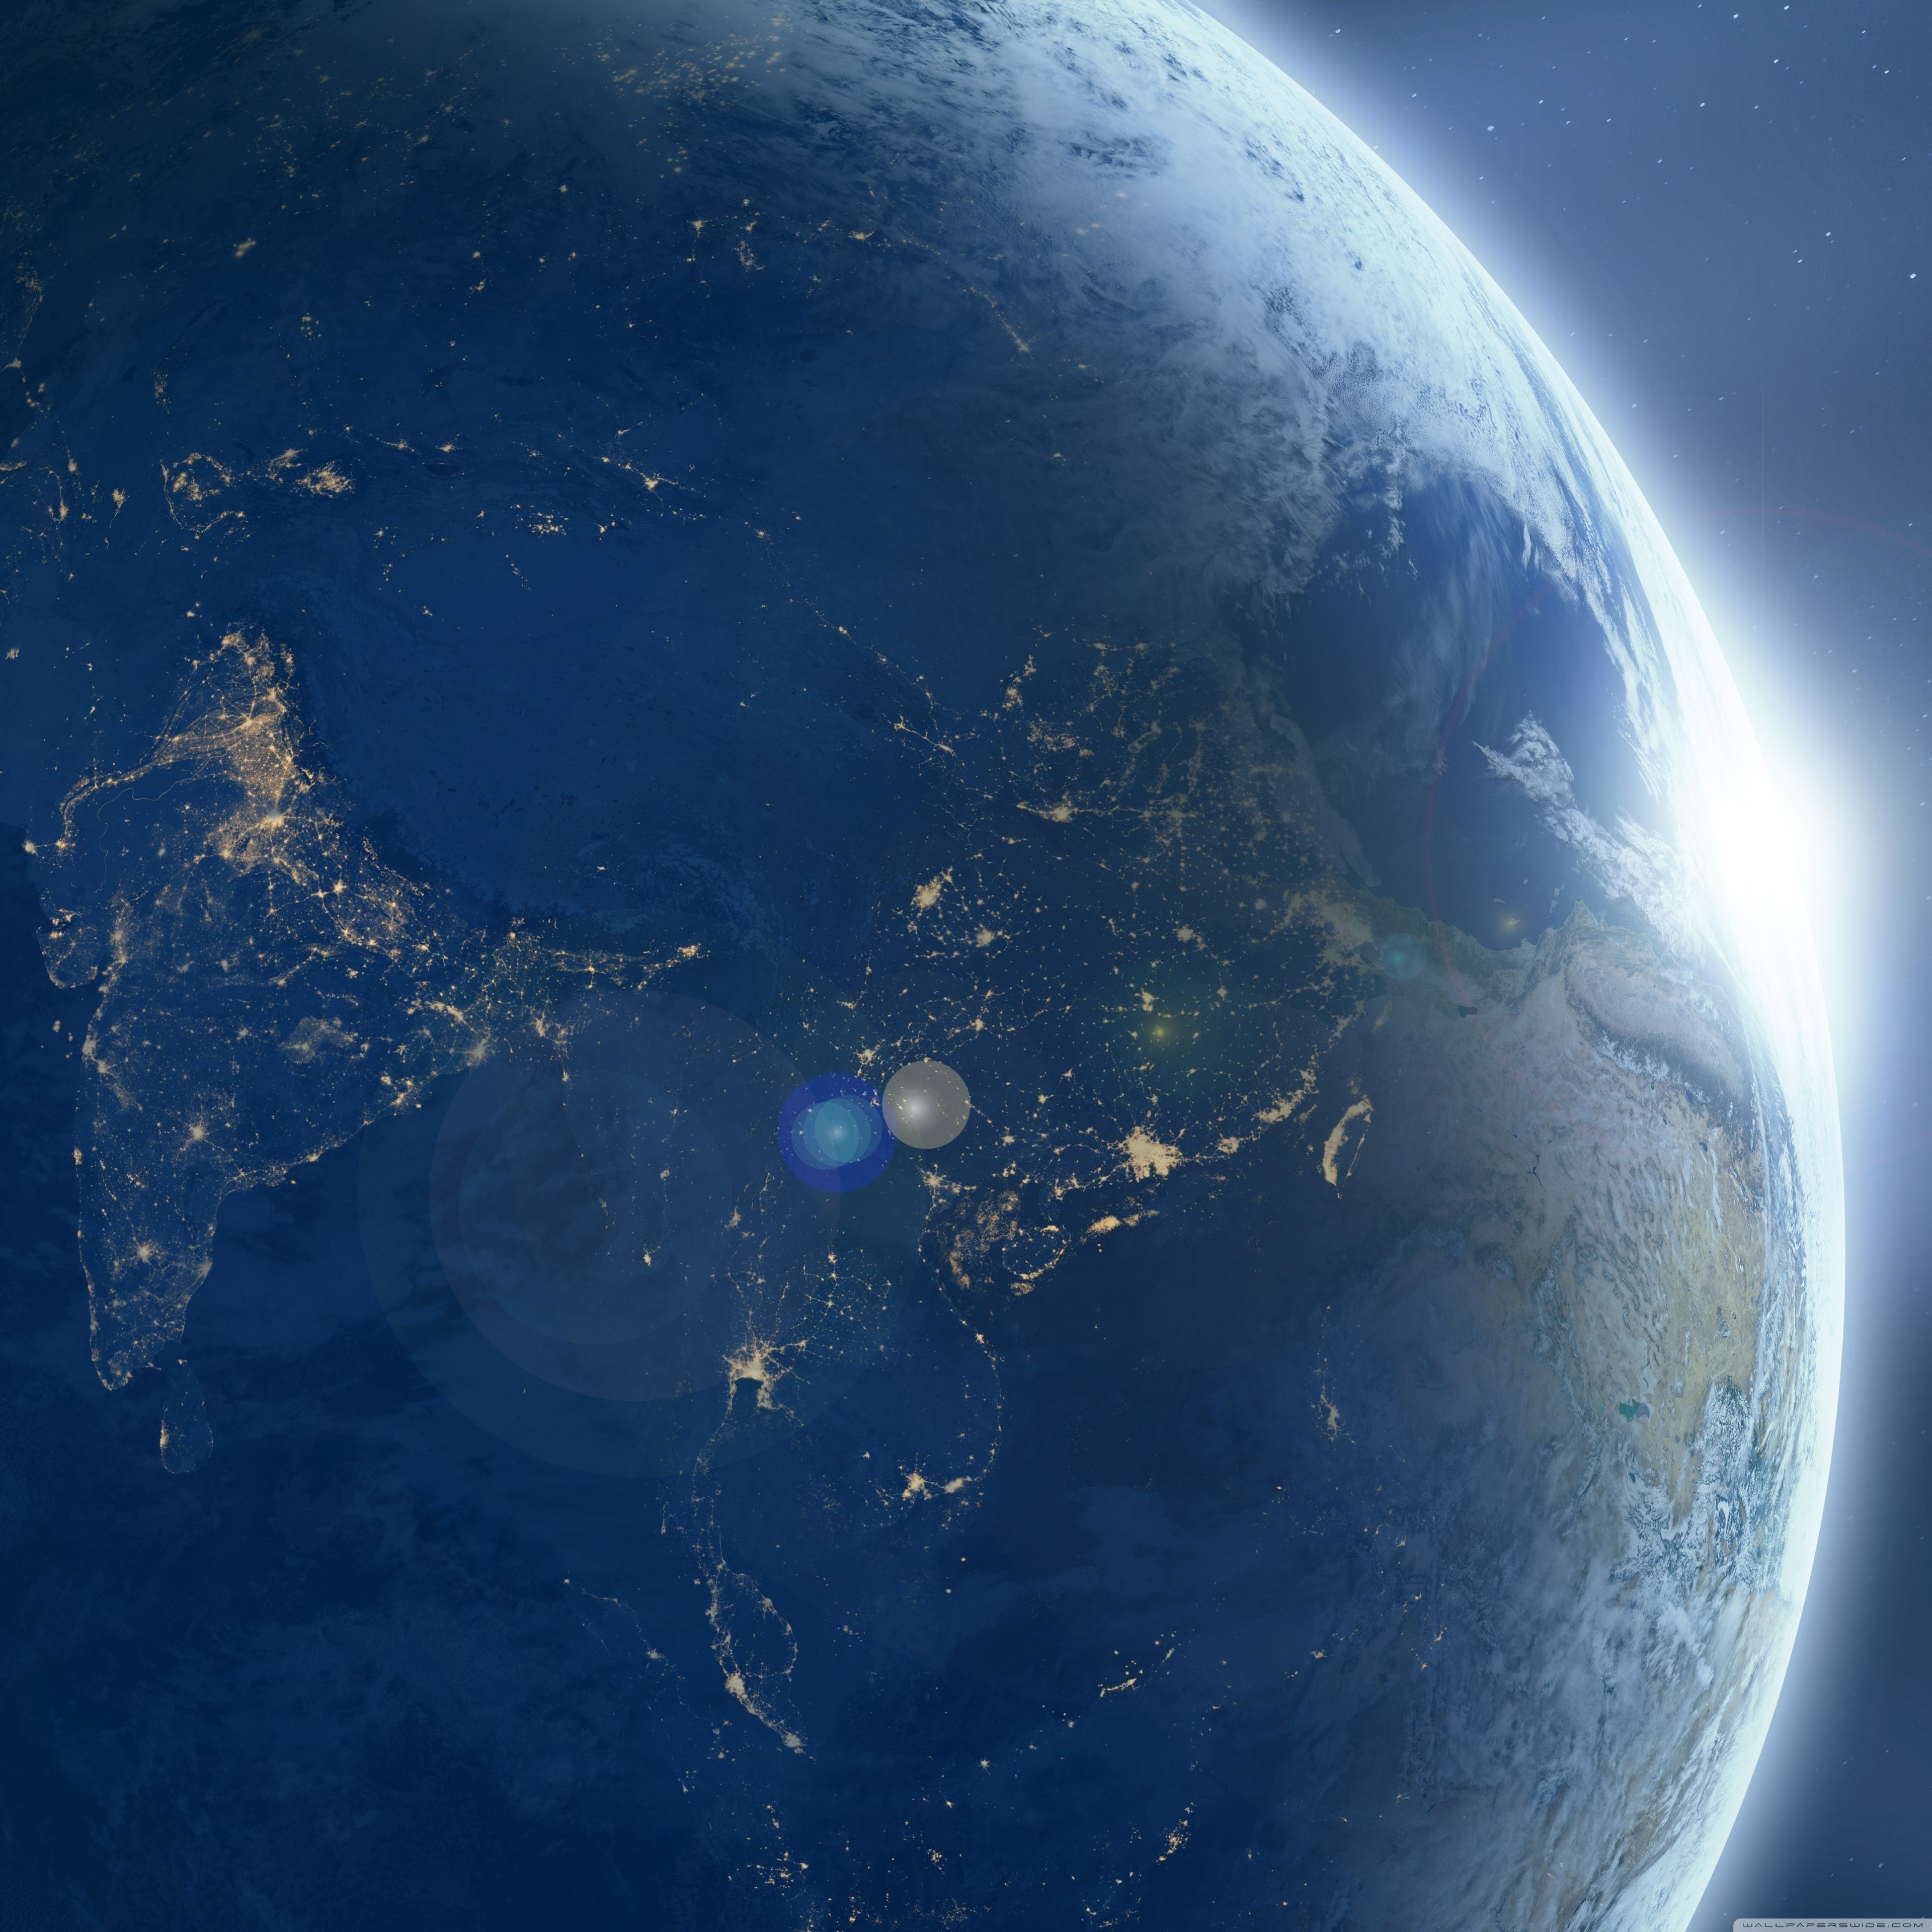 105 4k Earth Android Iphone Desktop Hd Backgrounds Wallpapers 1080p 4k 3840x3840 2020